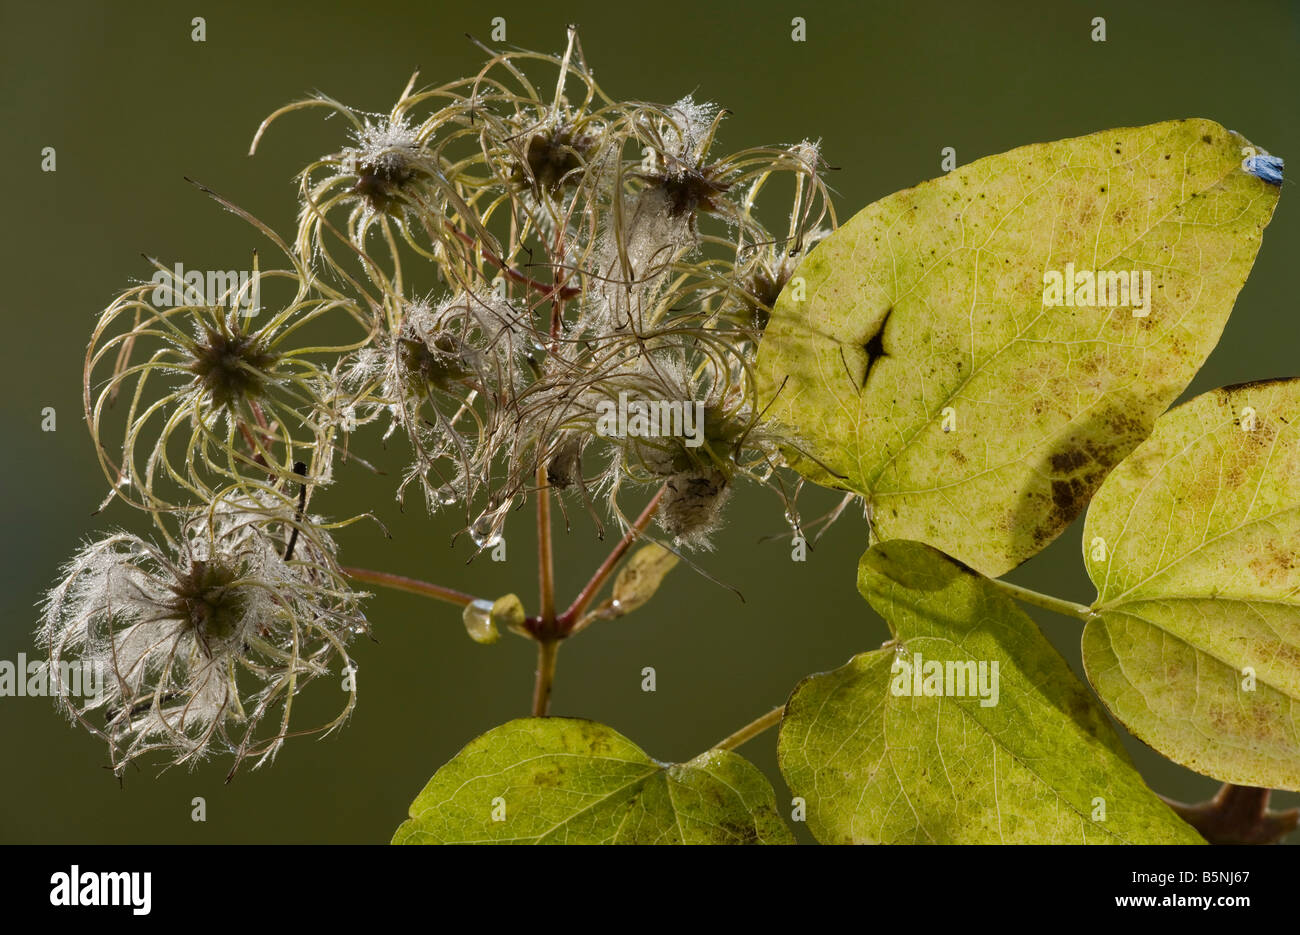 Wild Clematis or Old Man's Beard Clematis vitalba in autumn showing fruit and leaves Dorset - Stock Image